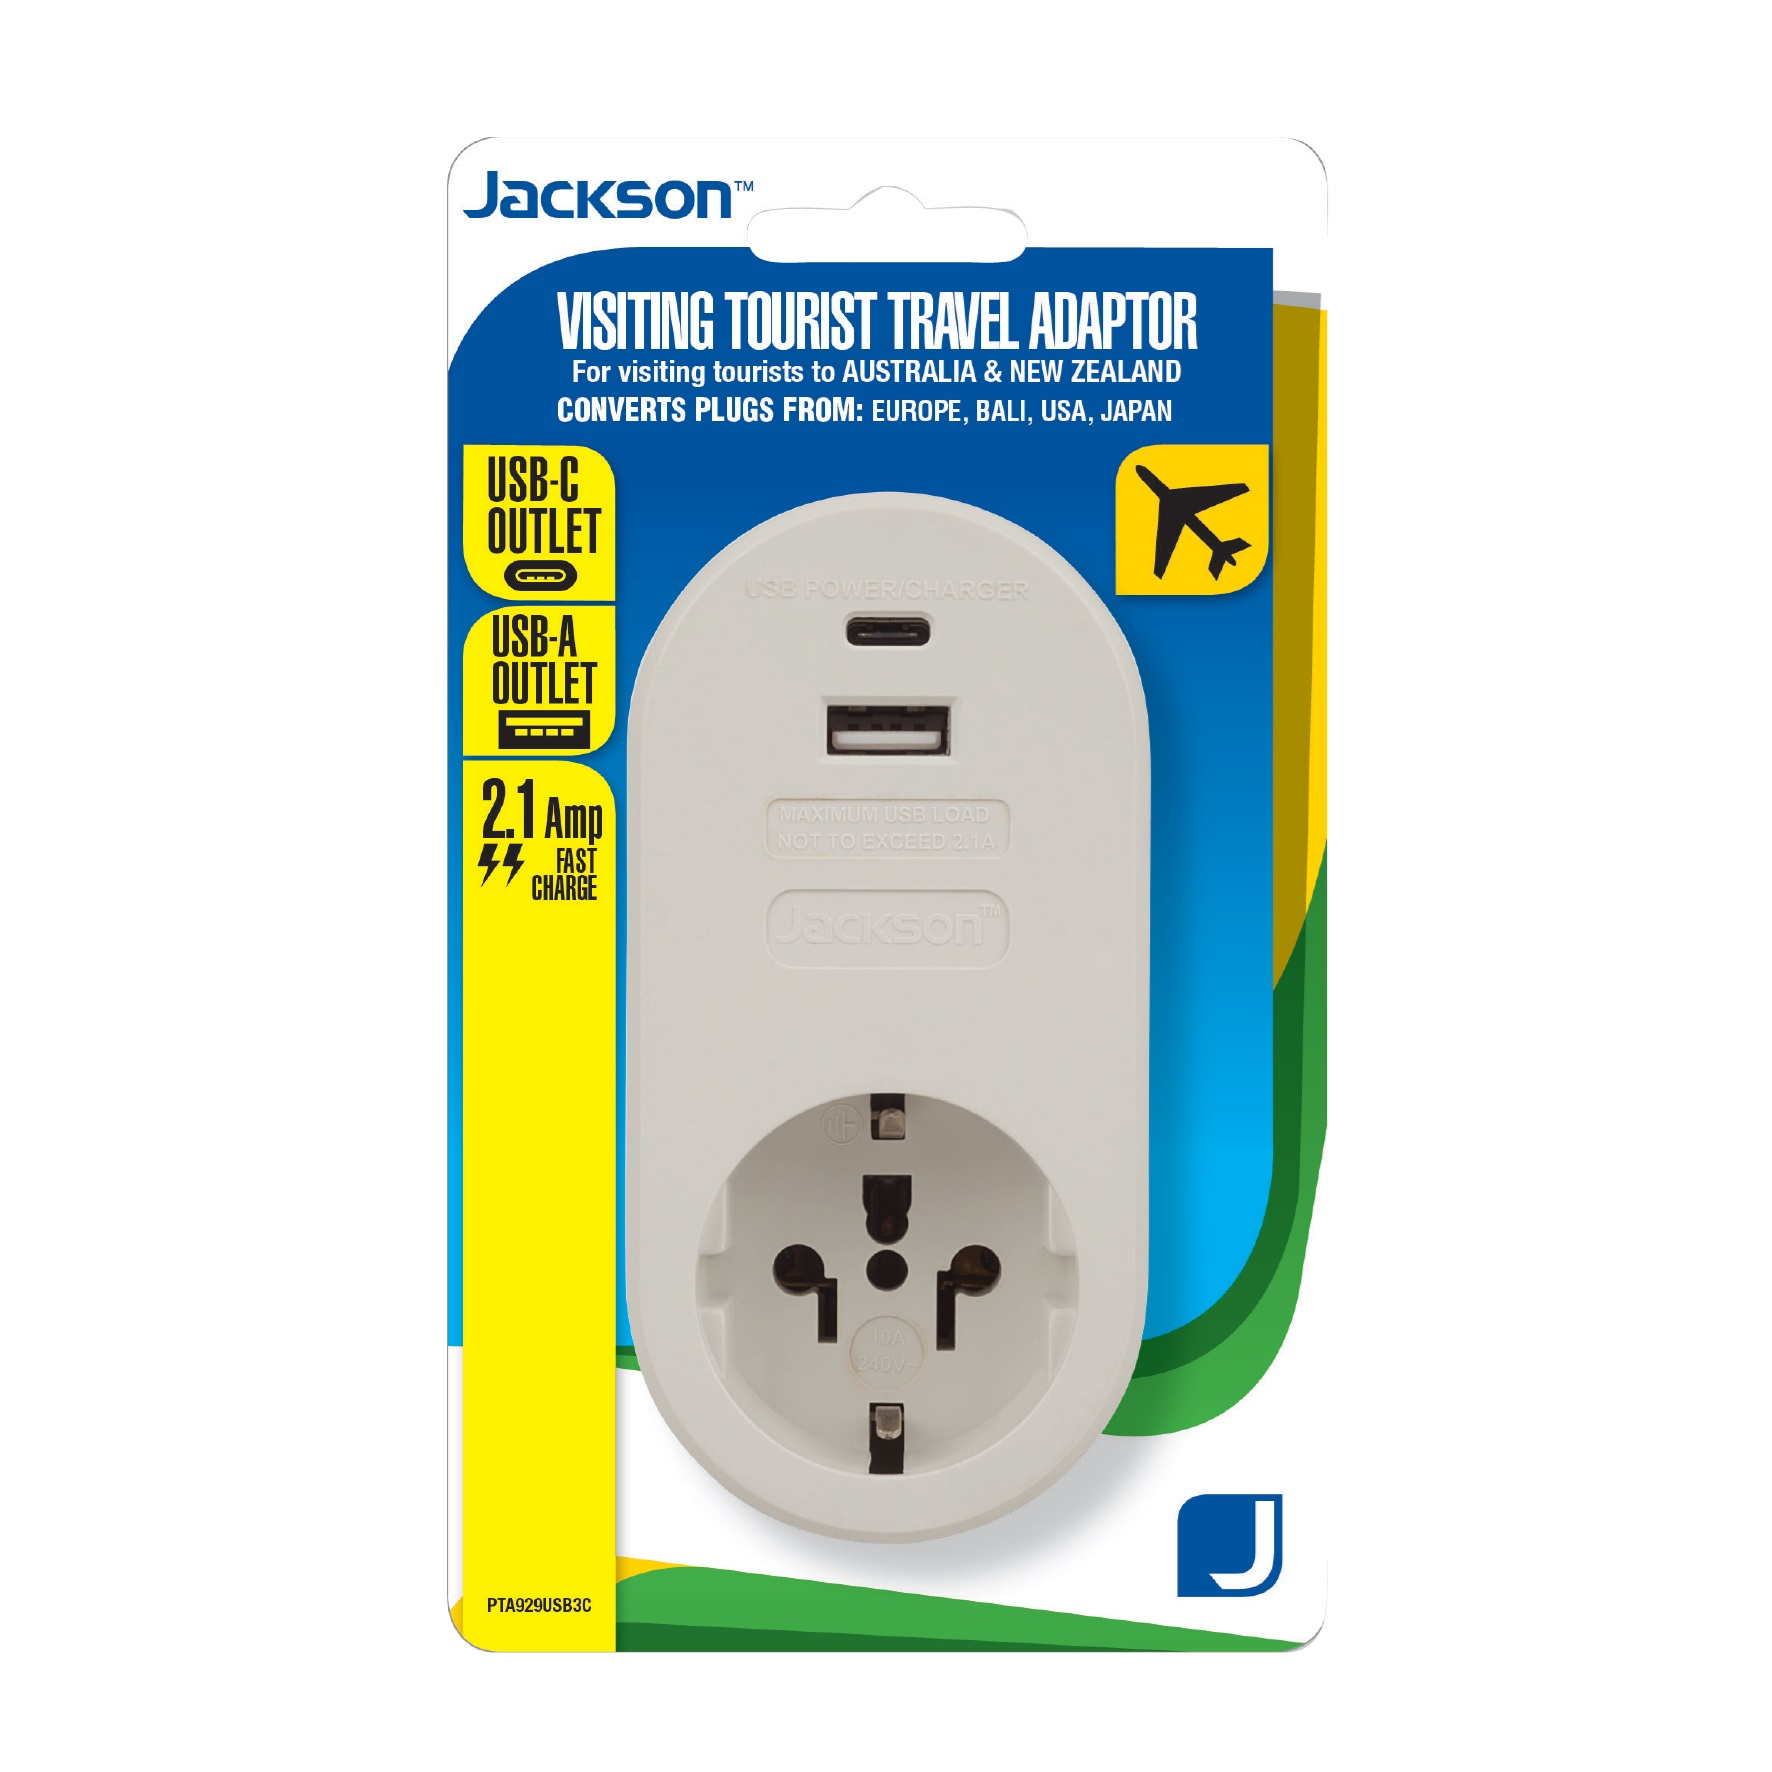 Jackson Inbound Travel Adaptor with 1 USB-A & 1 USB-C for Converting USA, Japan, Europe & Bali Plugs to New Zealand & Australia